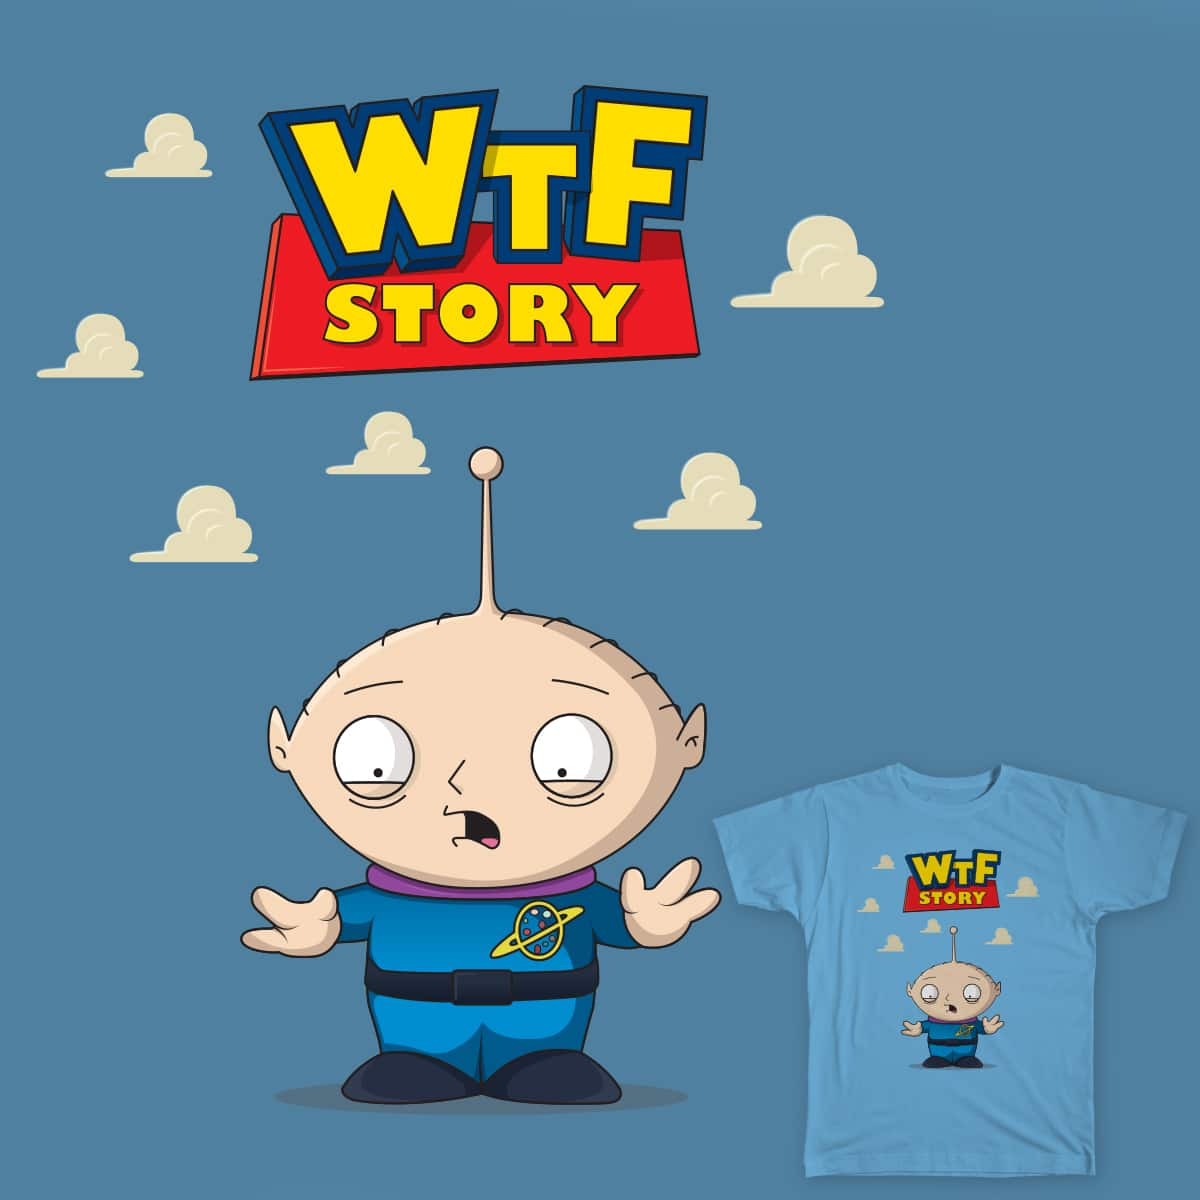 WTF Story by dvega20 on Threadless